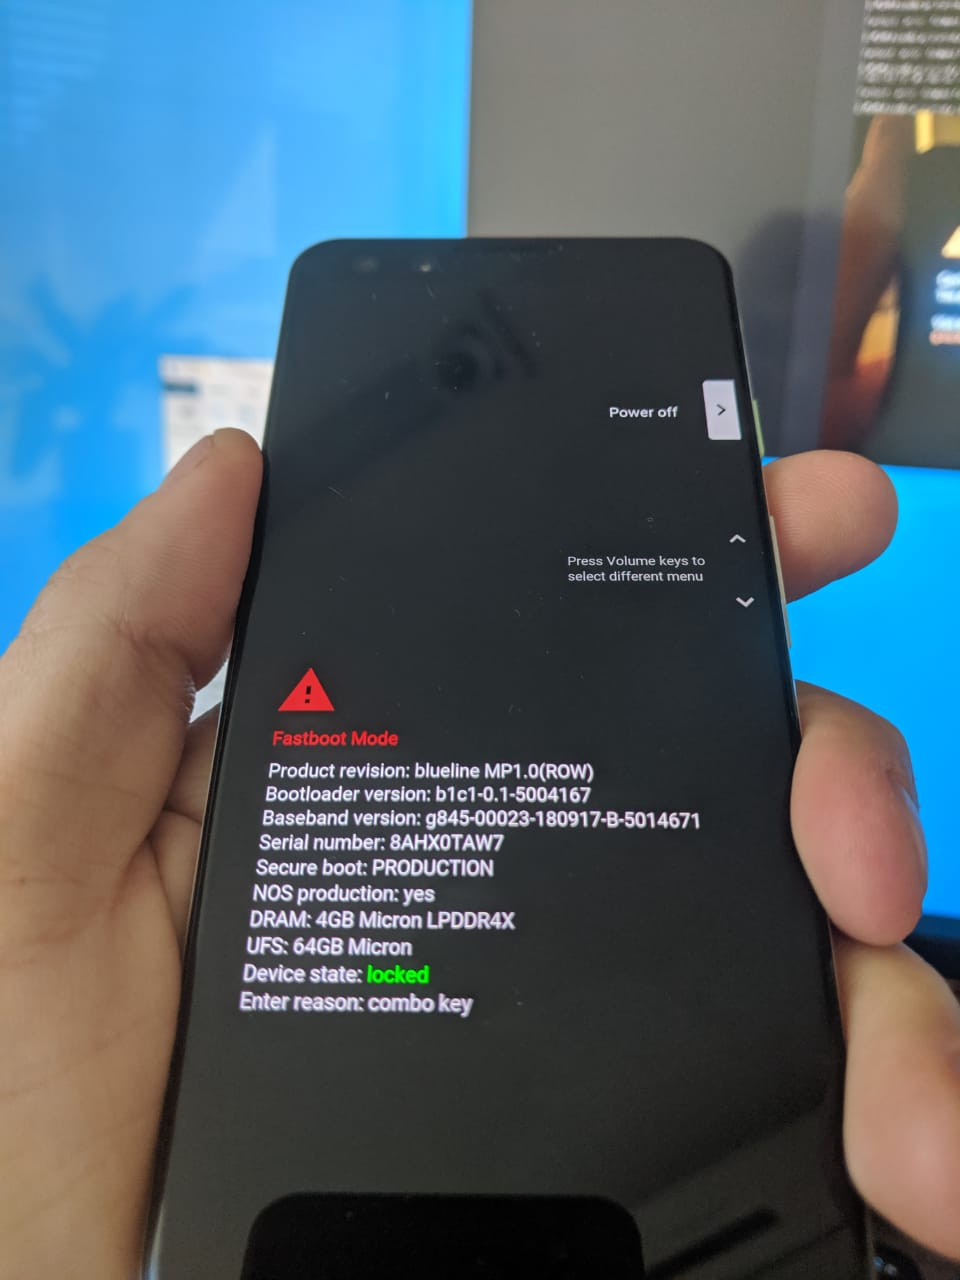 Pixel 3 Bricked  Cant install using FASTBOOT because it's locked